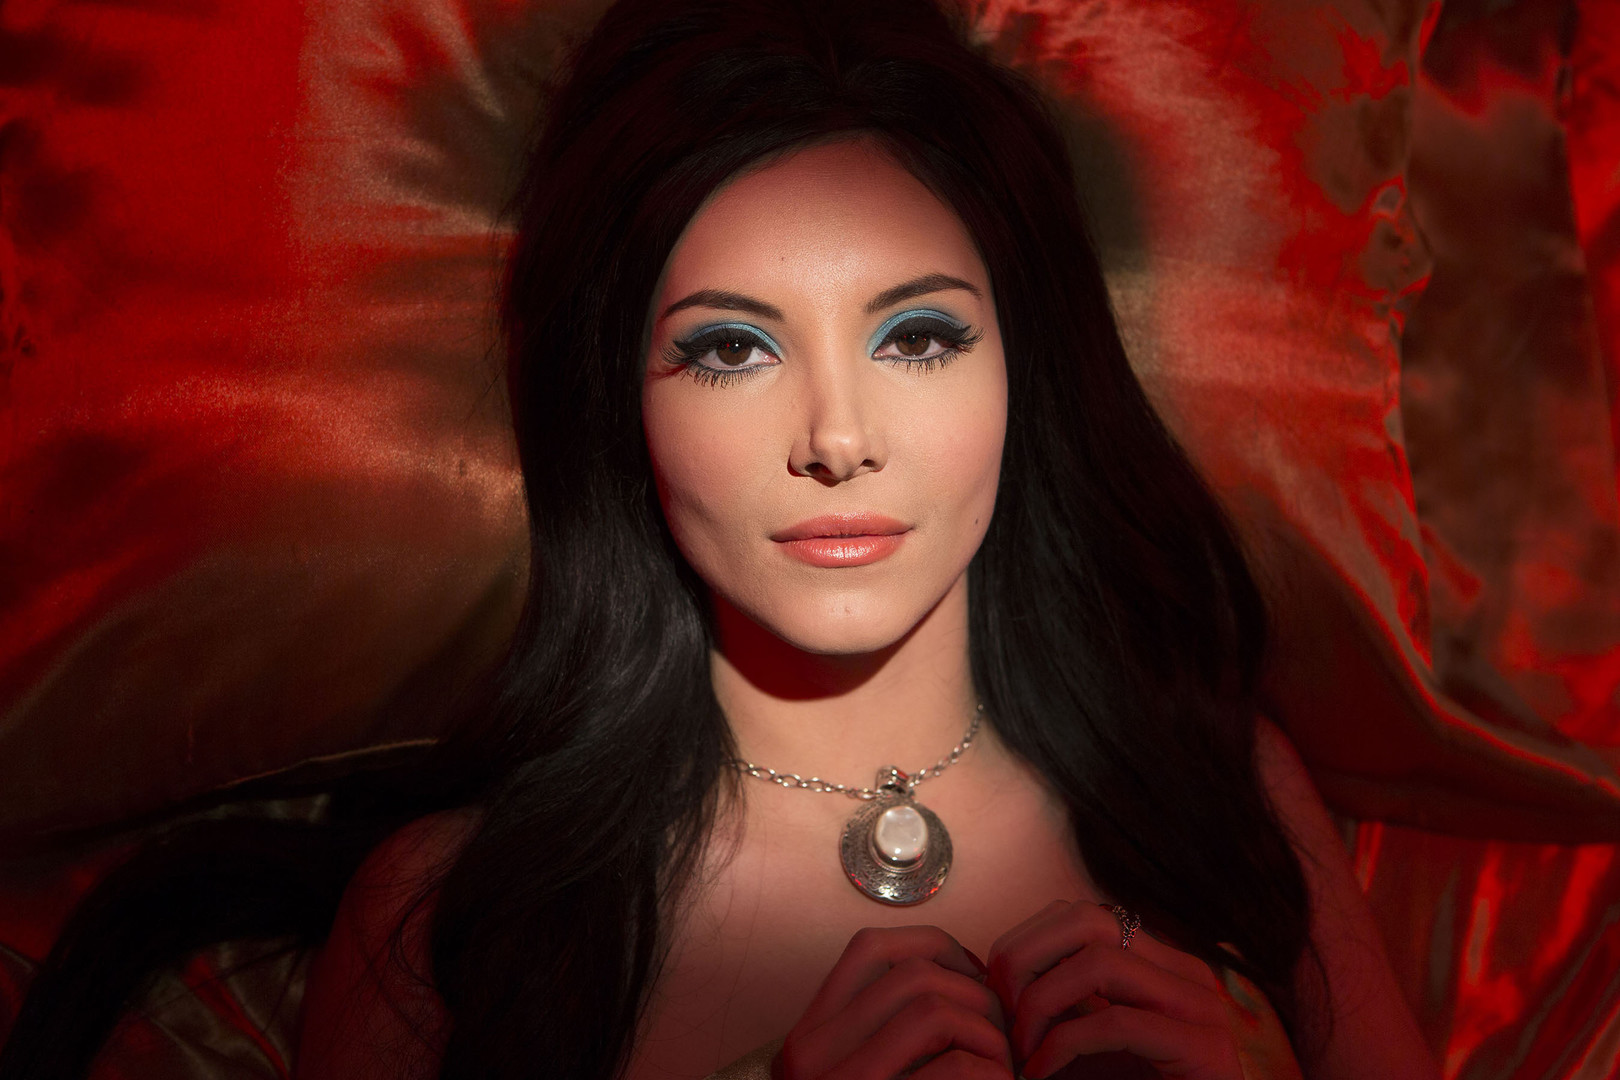 Qff2016 the love witch2